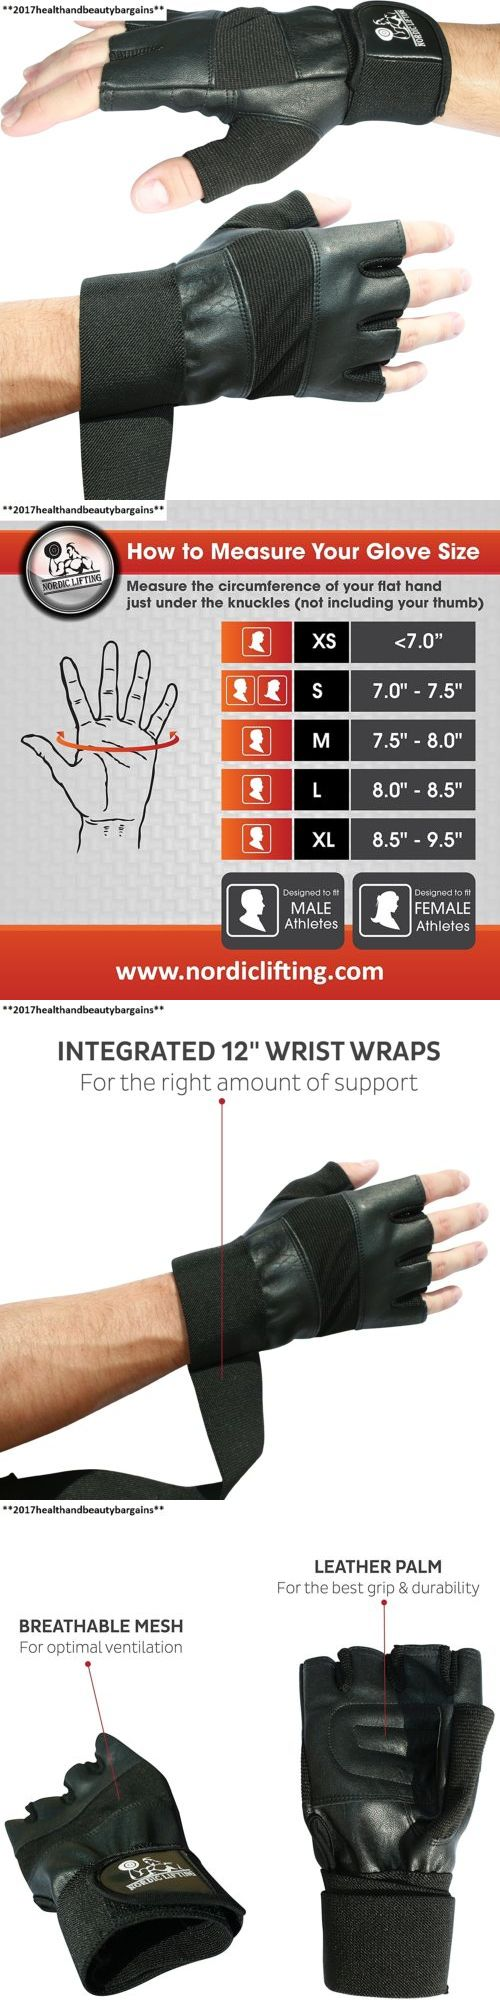 Male gloves ebay - Gloves Straps And Hooks 179820 Weight Lifting Gloves With 12 Wrist Support For Gym Workout